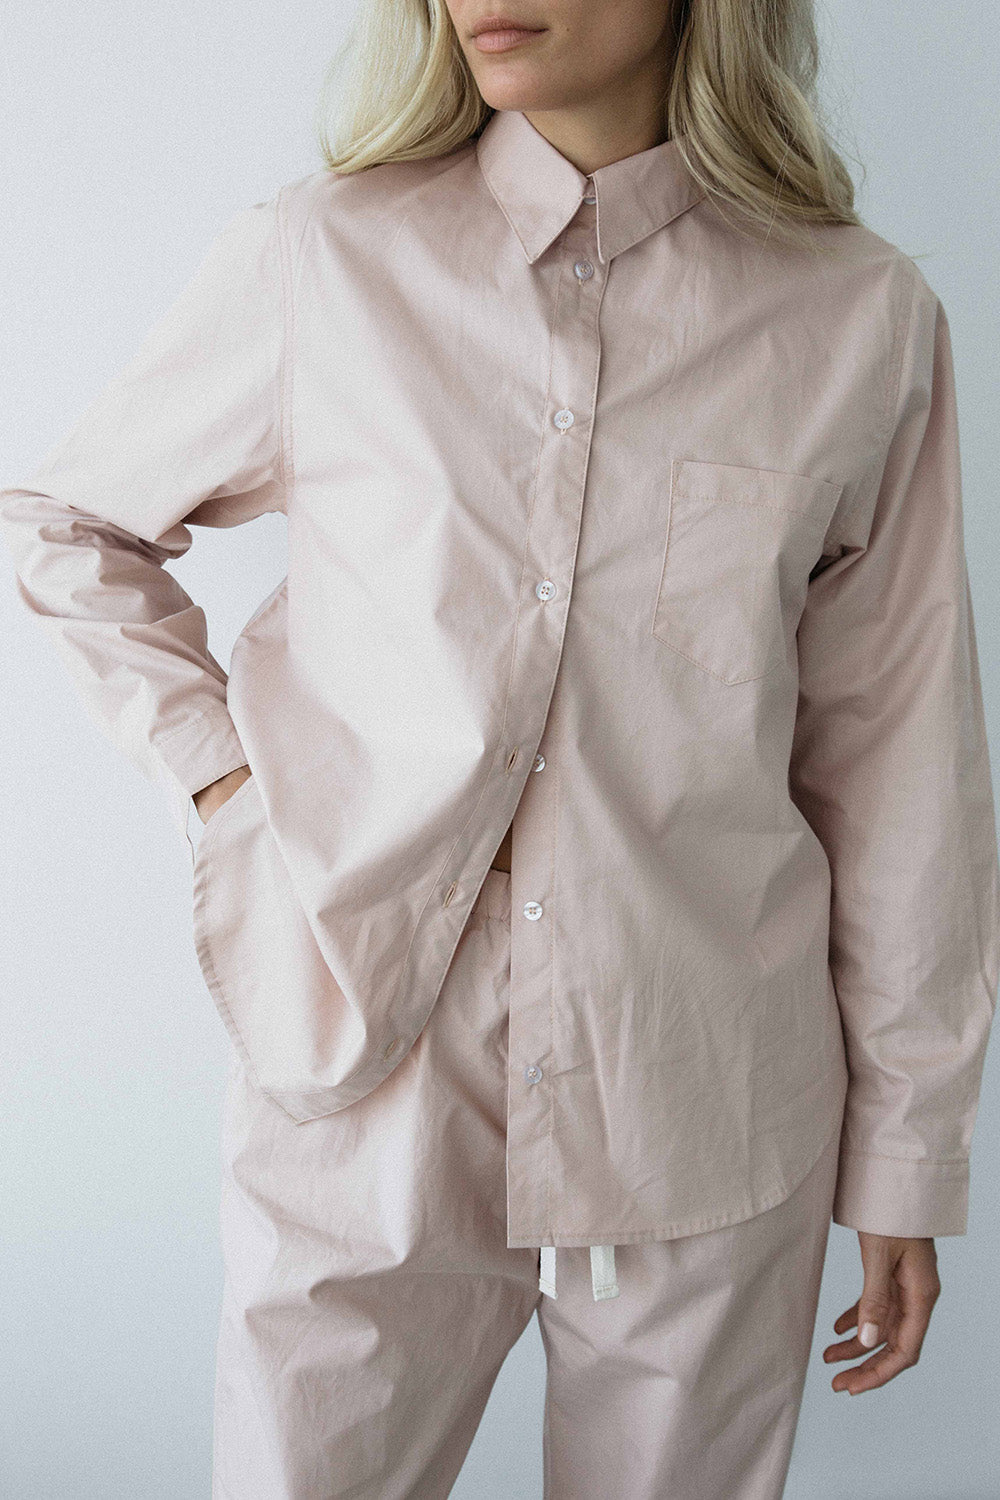 rose long sleeve shirt - PENNEY + BENNETT